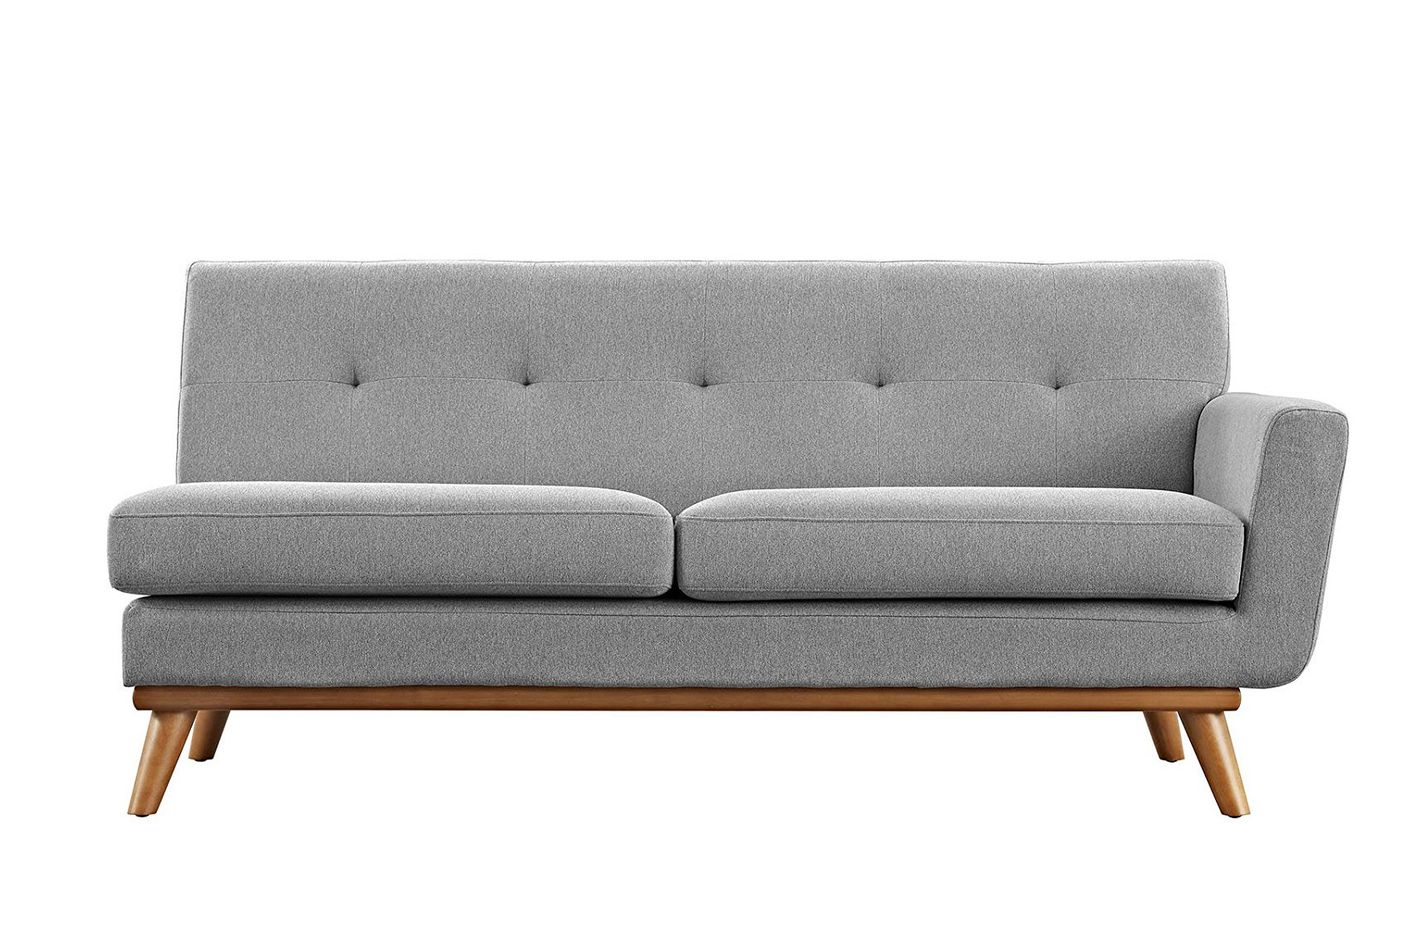 Best Affordable Sofa latest sofa designs ideas It Can Work Well Mixed With Higher Priced Pieces Without Showing Its Affordable Price So No One Will Ever Know You Spent Less Than